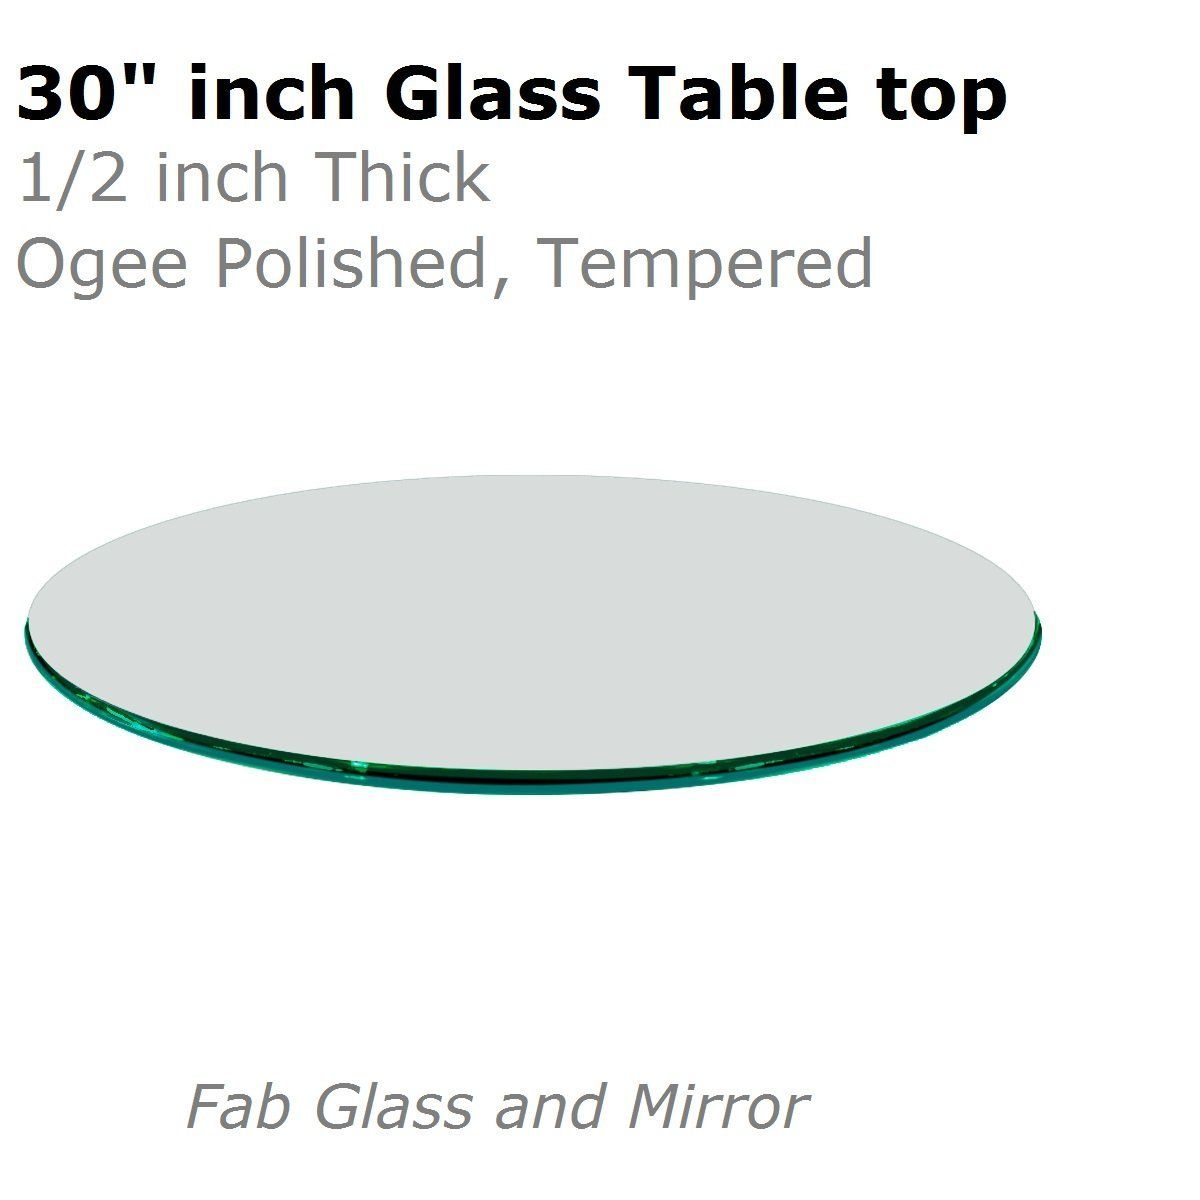 Glass Table Top 30 Inch Round 1 2 Inch Thick Ogee Tempered Check Out This Great Image Fo Glass Top Table Round Glass Table Top Tempered Glass Table Top 30 round glass table top